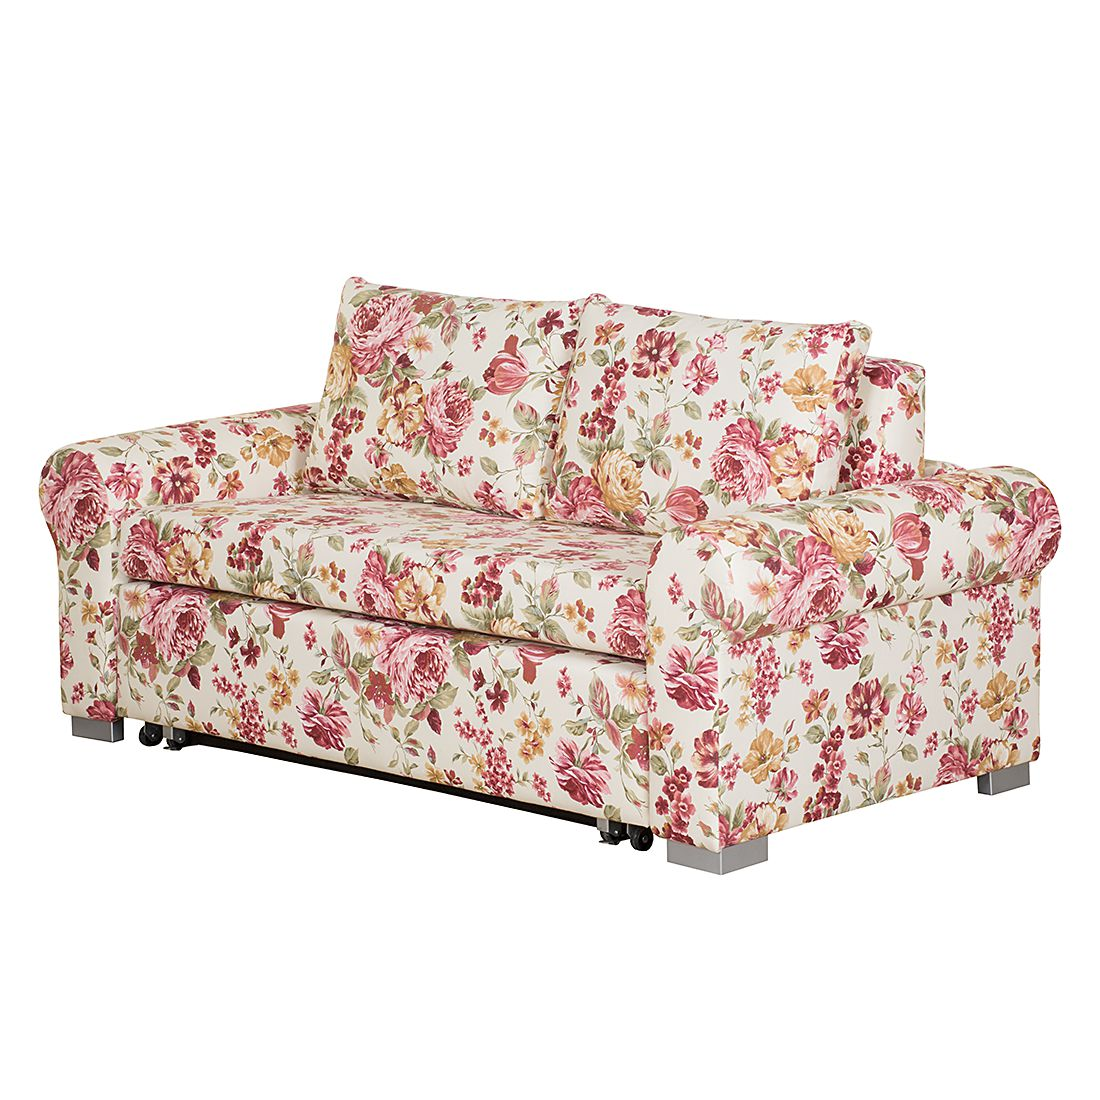 Canapé convertible Latina XII - Tissu - Multicolore - 165 cm - Types d´accoudoir arrondis, Maison Be